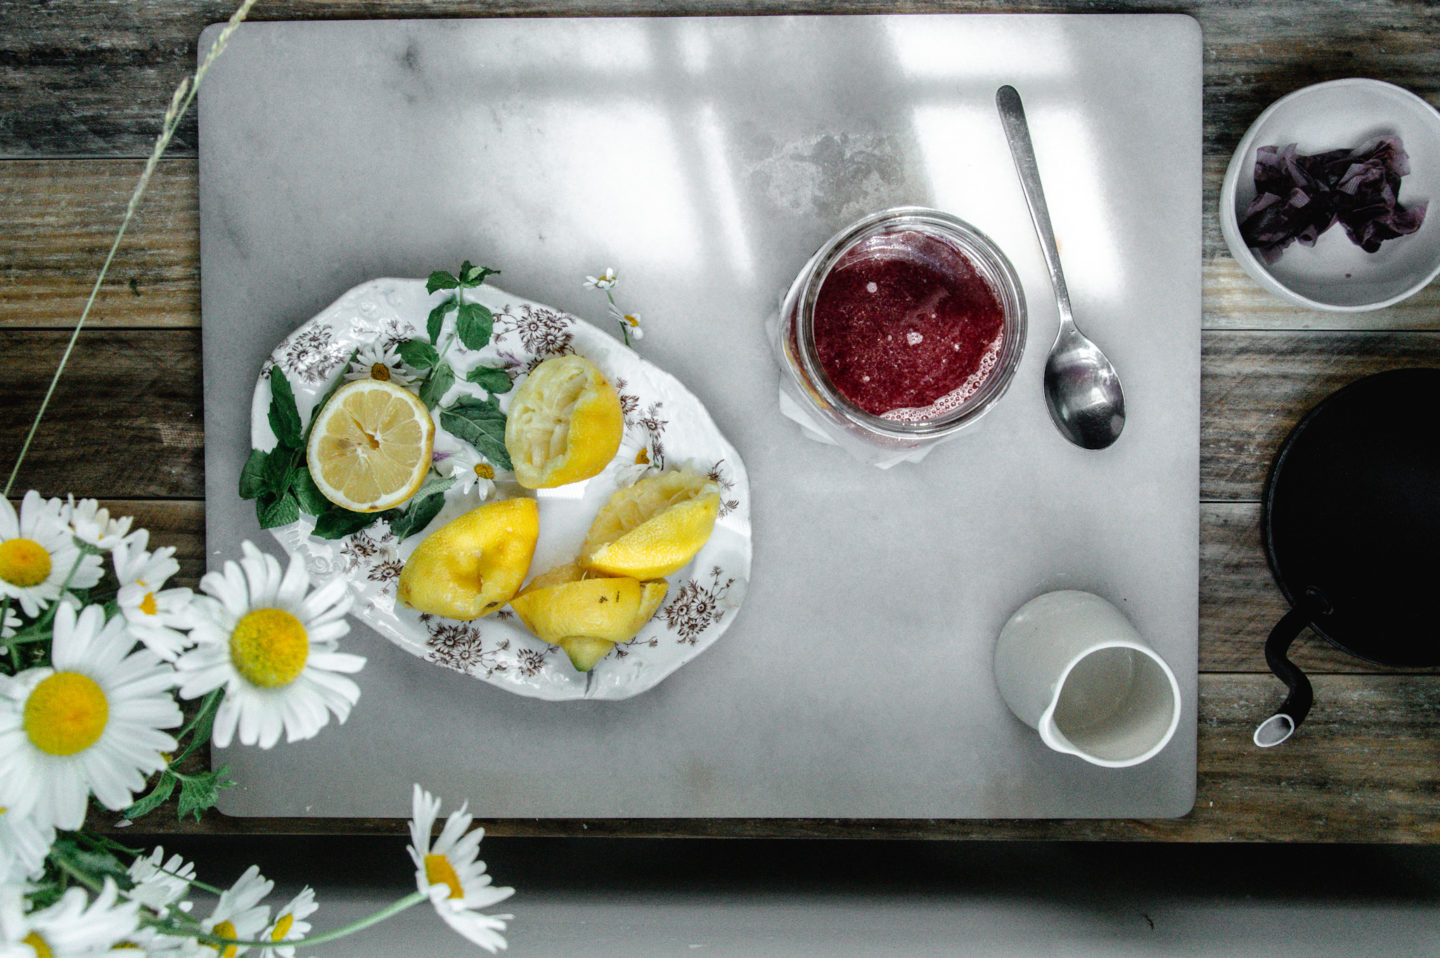 In this post I'll walk you through how to make a raspberry lemonade iced tea concentrate